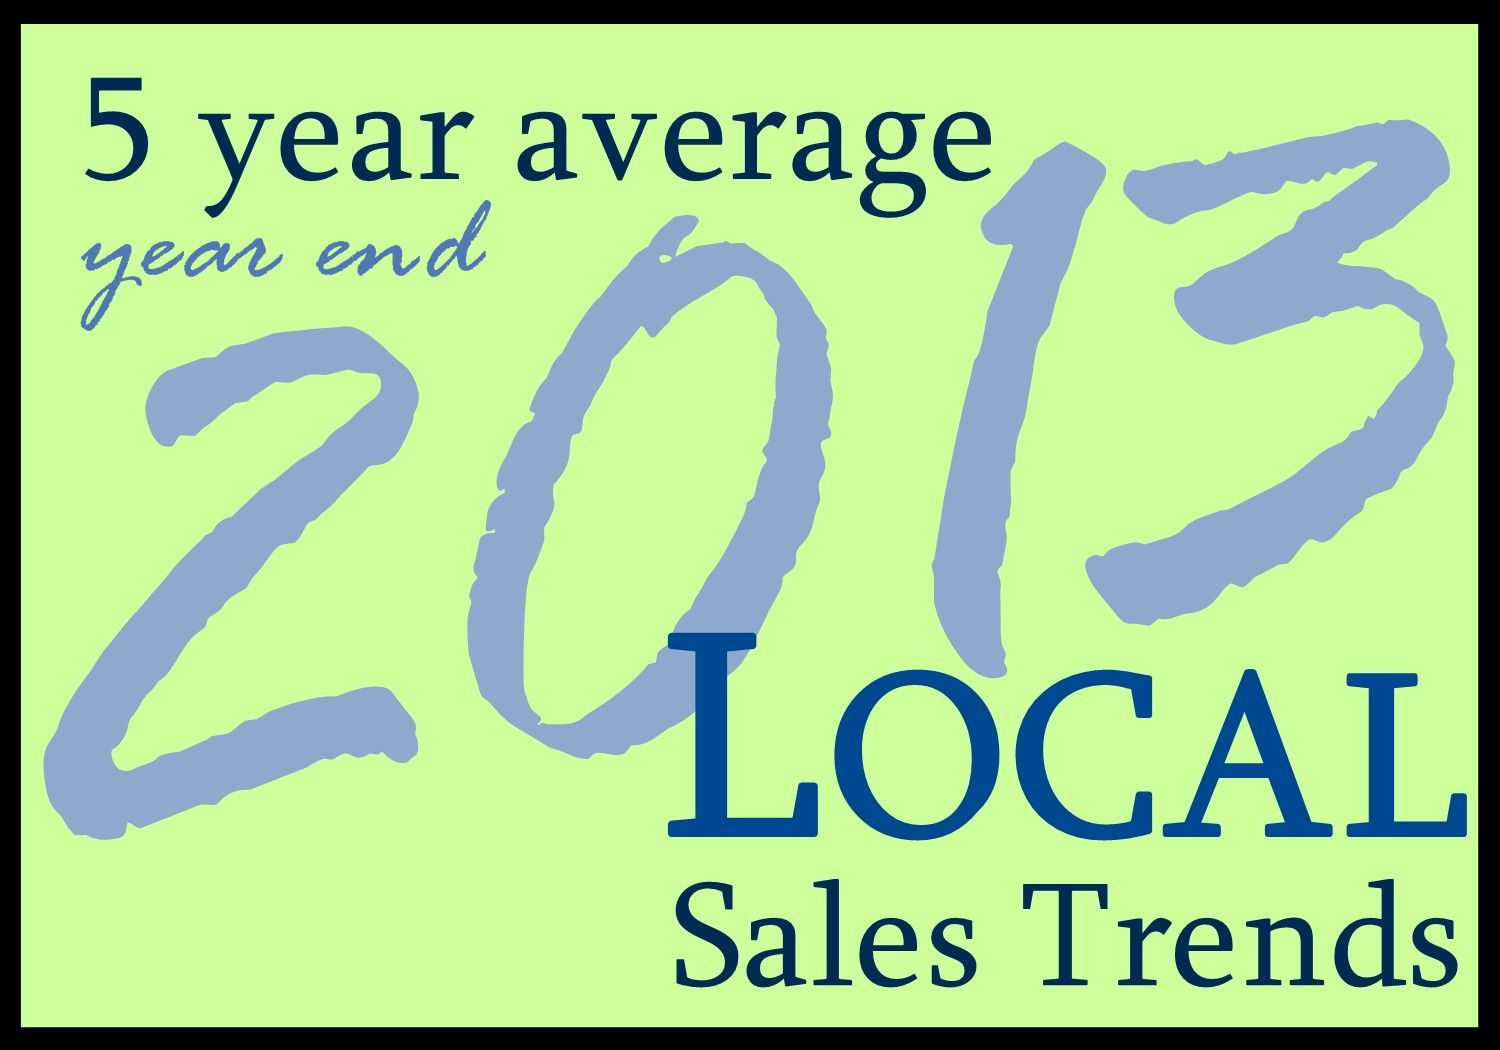 Local Sales Trends for year ending 2013